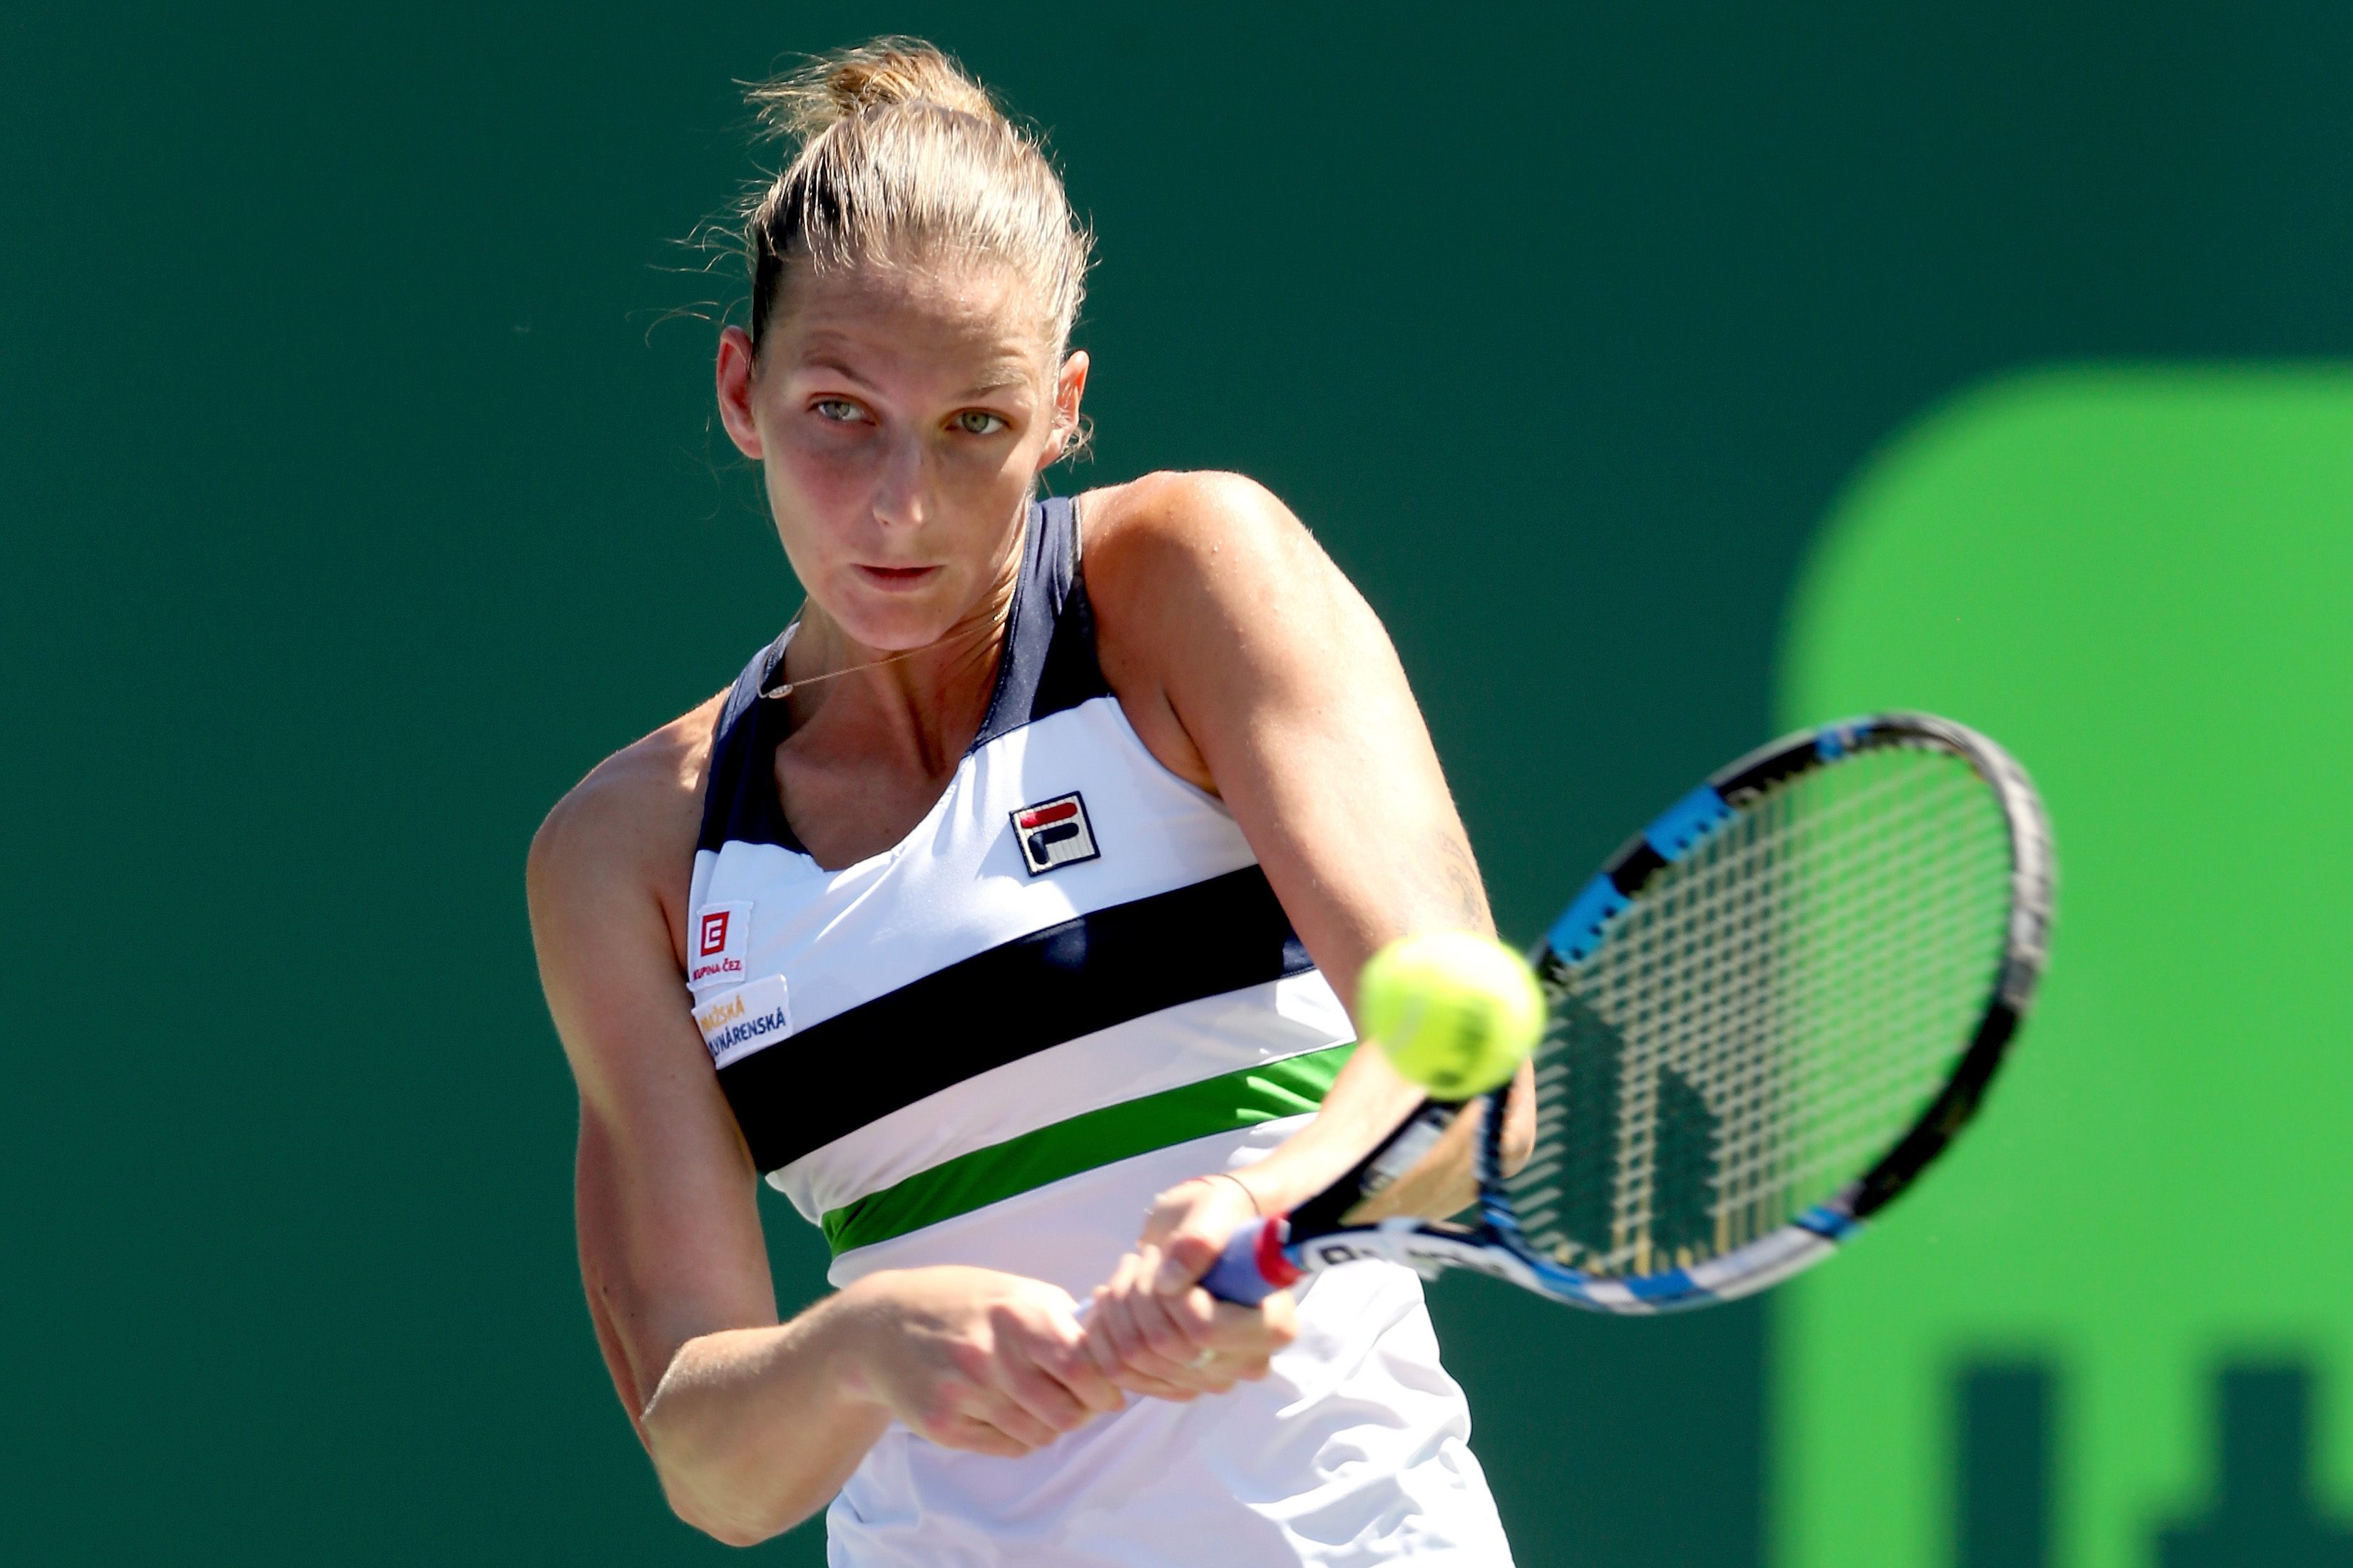 KEY BISCAYNE, FL - MARCH 28: Karolina Pliskova of Czech Republic returns a shot to Mirjana Lucic-Baroni of Croatia during the Miami Open at the Crandon Park Tennis Center on March 28, 2017 in Key Biscayne, Florida. (Photo by Matthew Stockman/Getty Images)